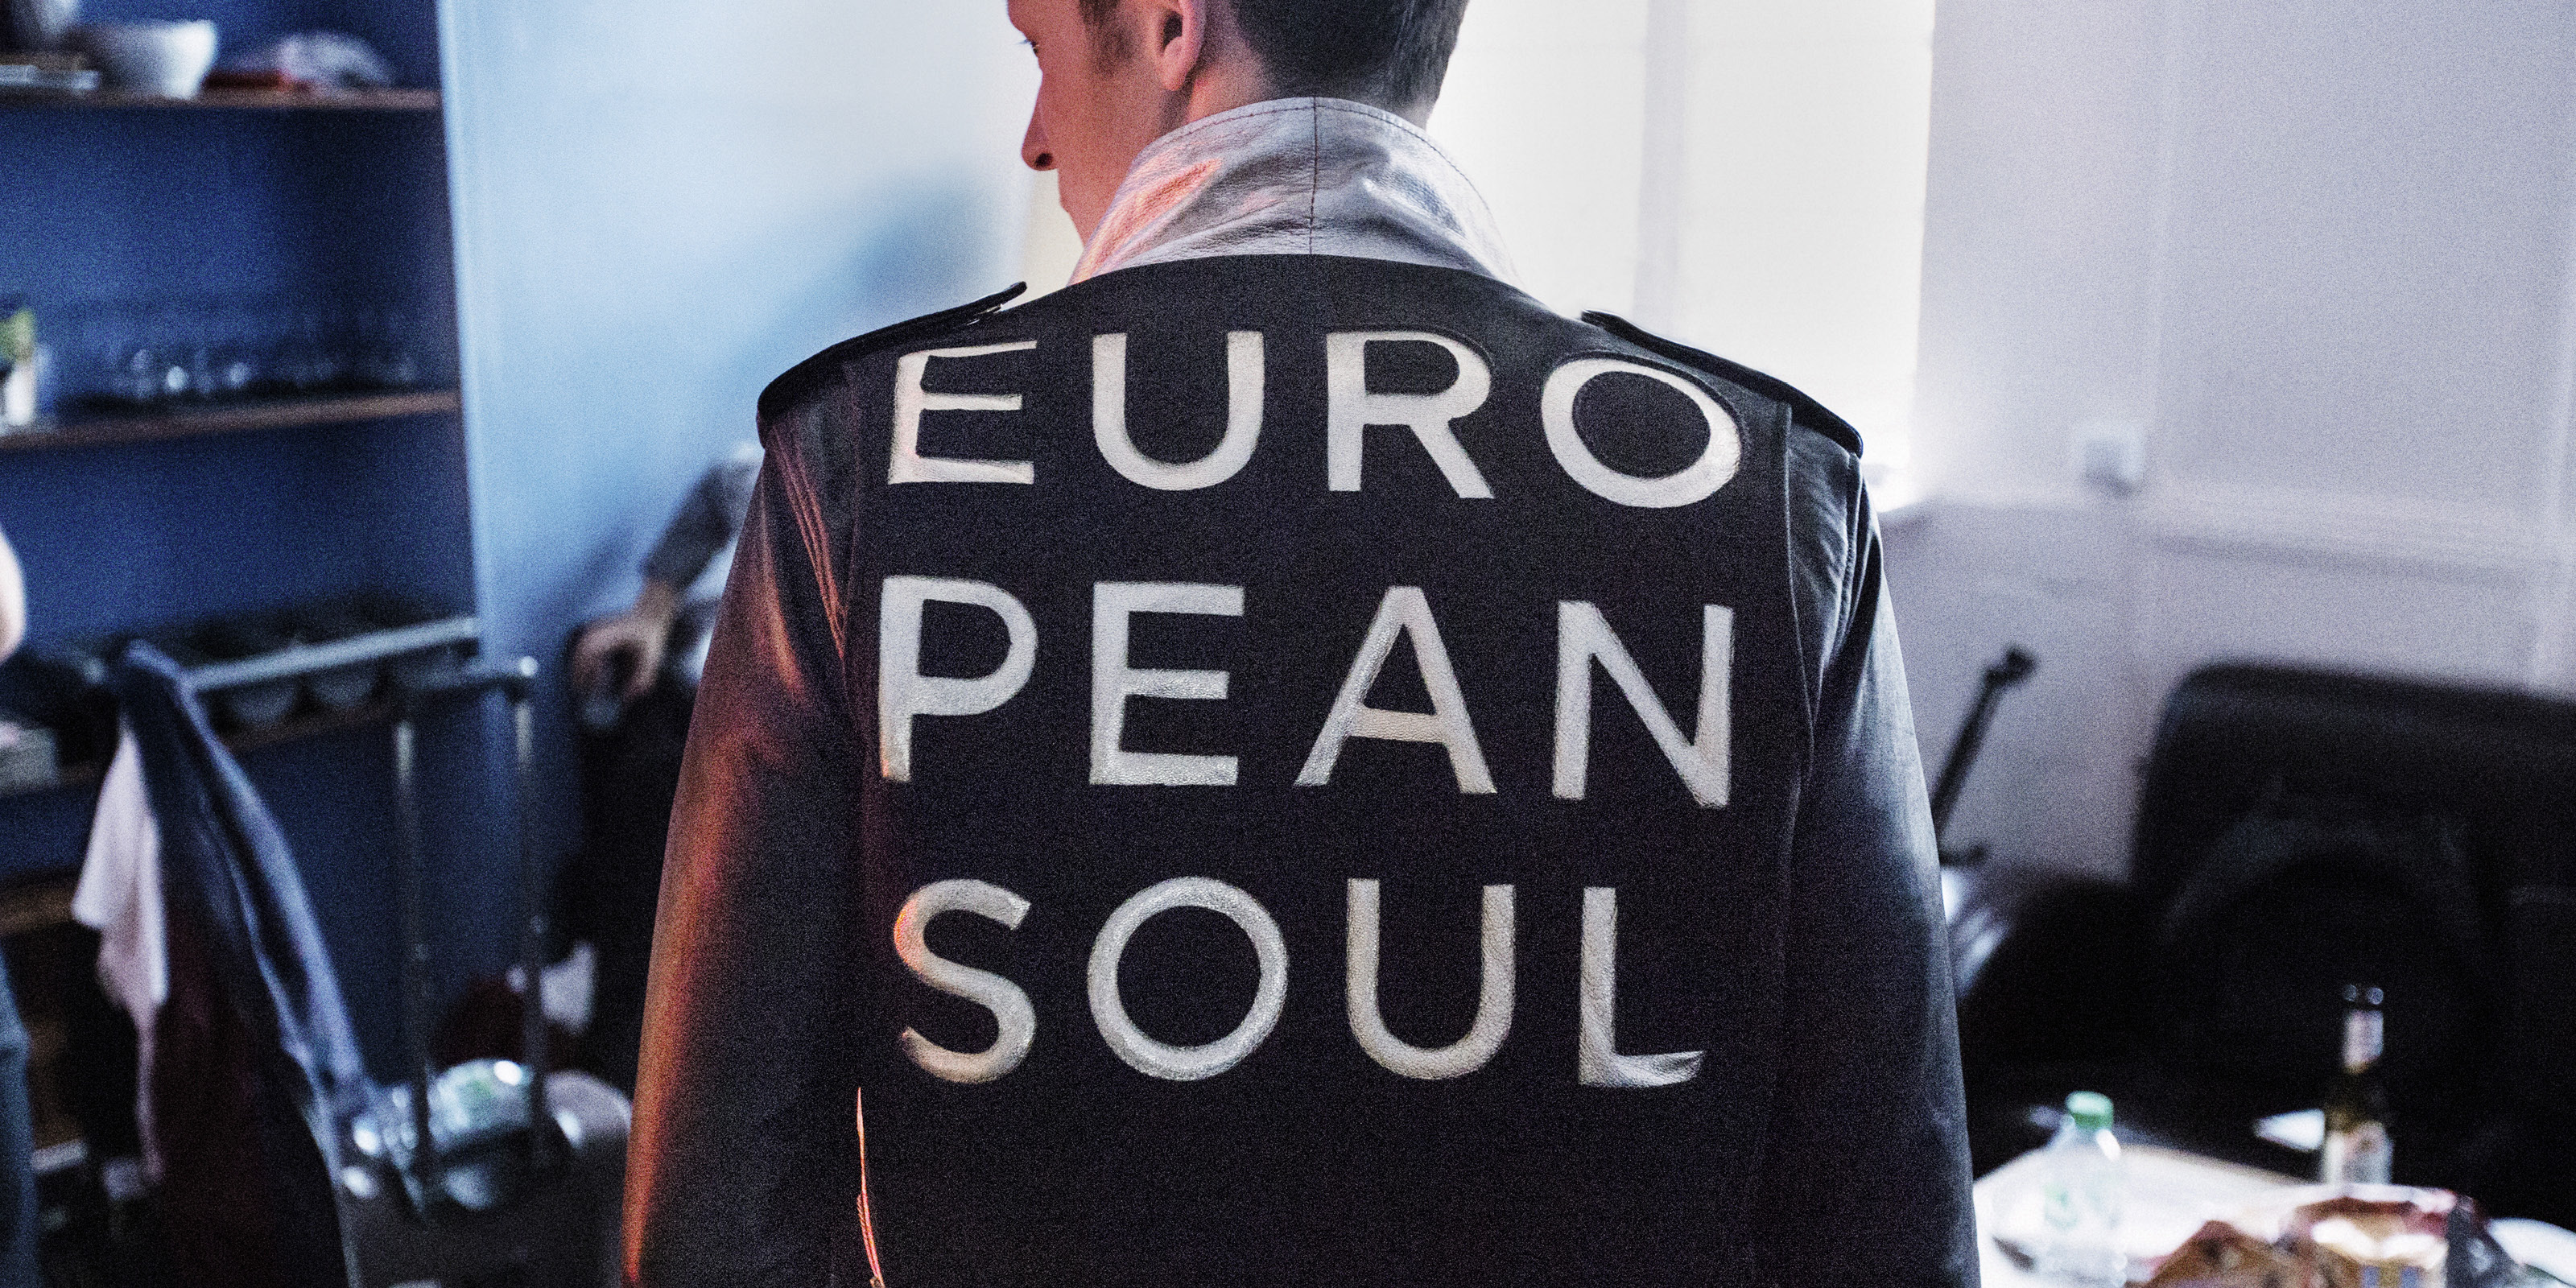 MYKITA Journal caught up with British band CITIZENS! in Berlin during the promo tour of their album European Soul.